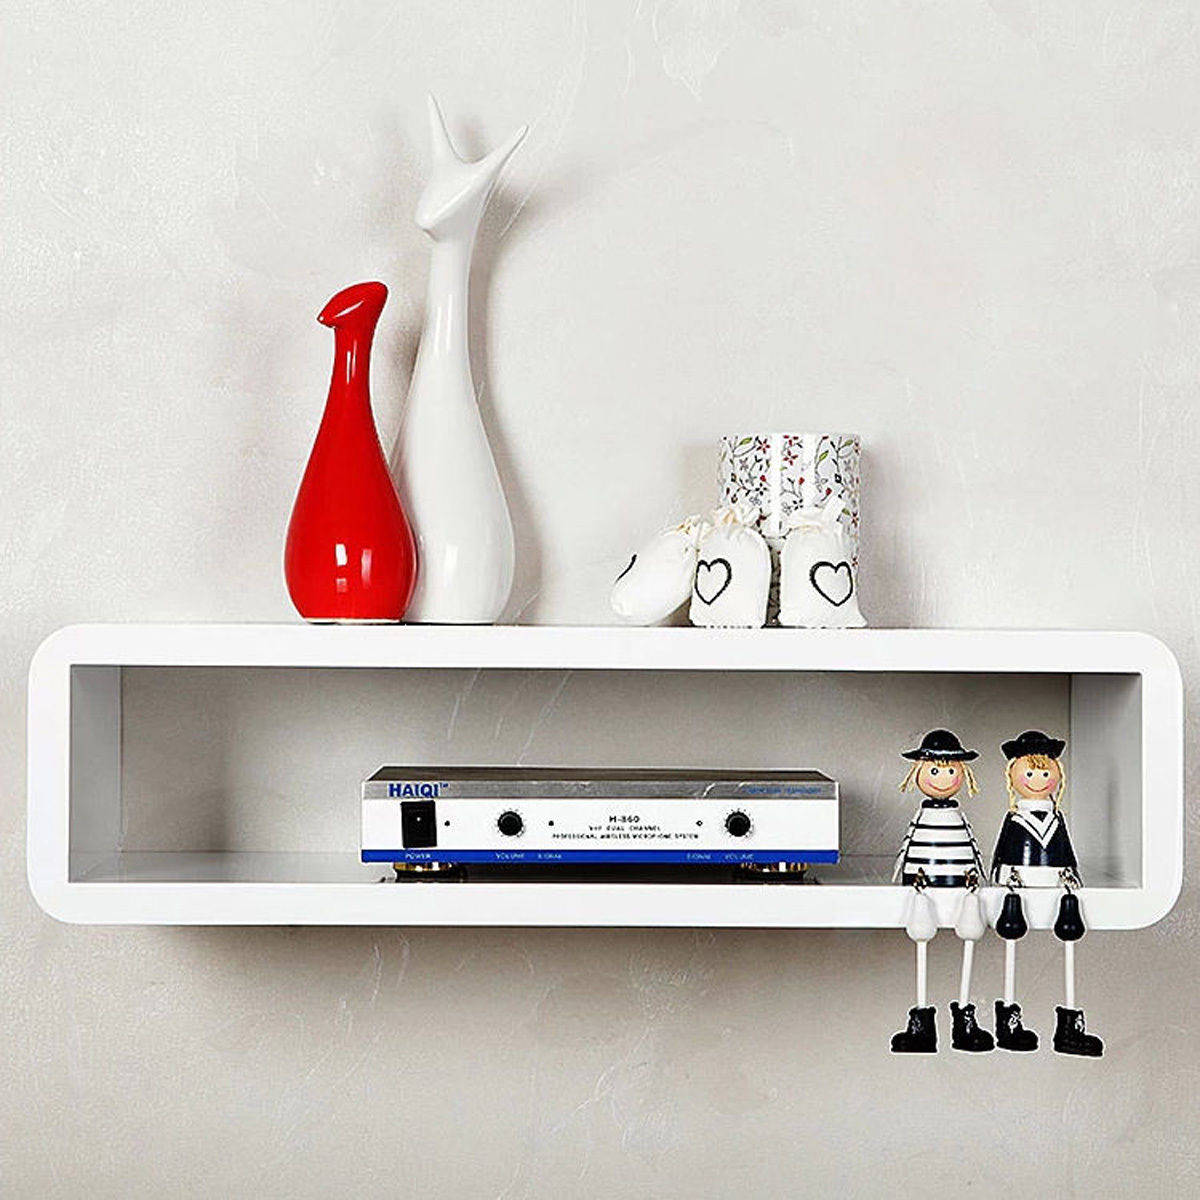 floating mfd wall mount shelf cube sky box hifi unit large shoe rack ikea long mantel space saving desk with shelves bathroom art ideas decor computer welland chicago hanging